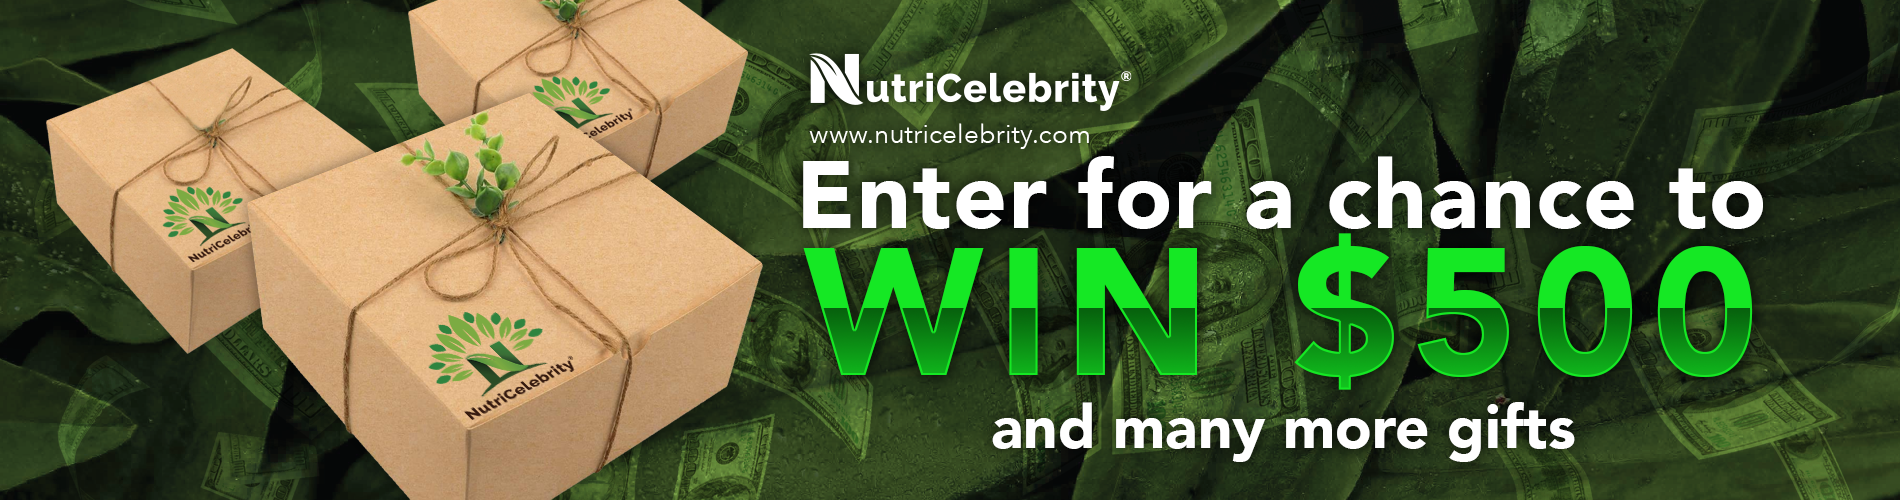 nutricelebrity-giveaway-contest-banner